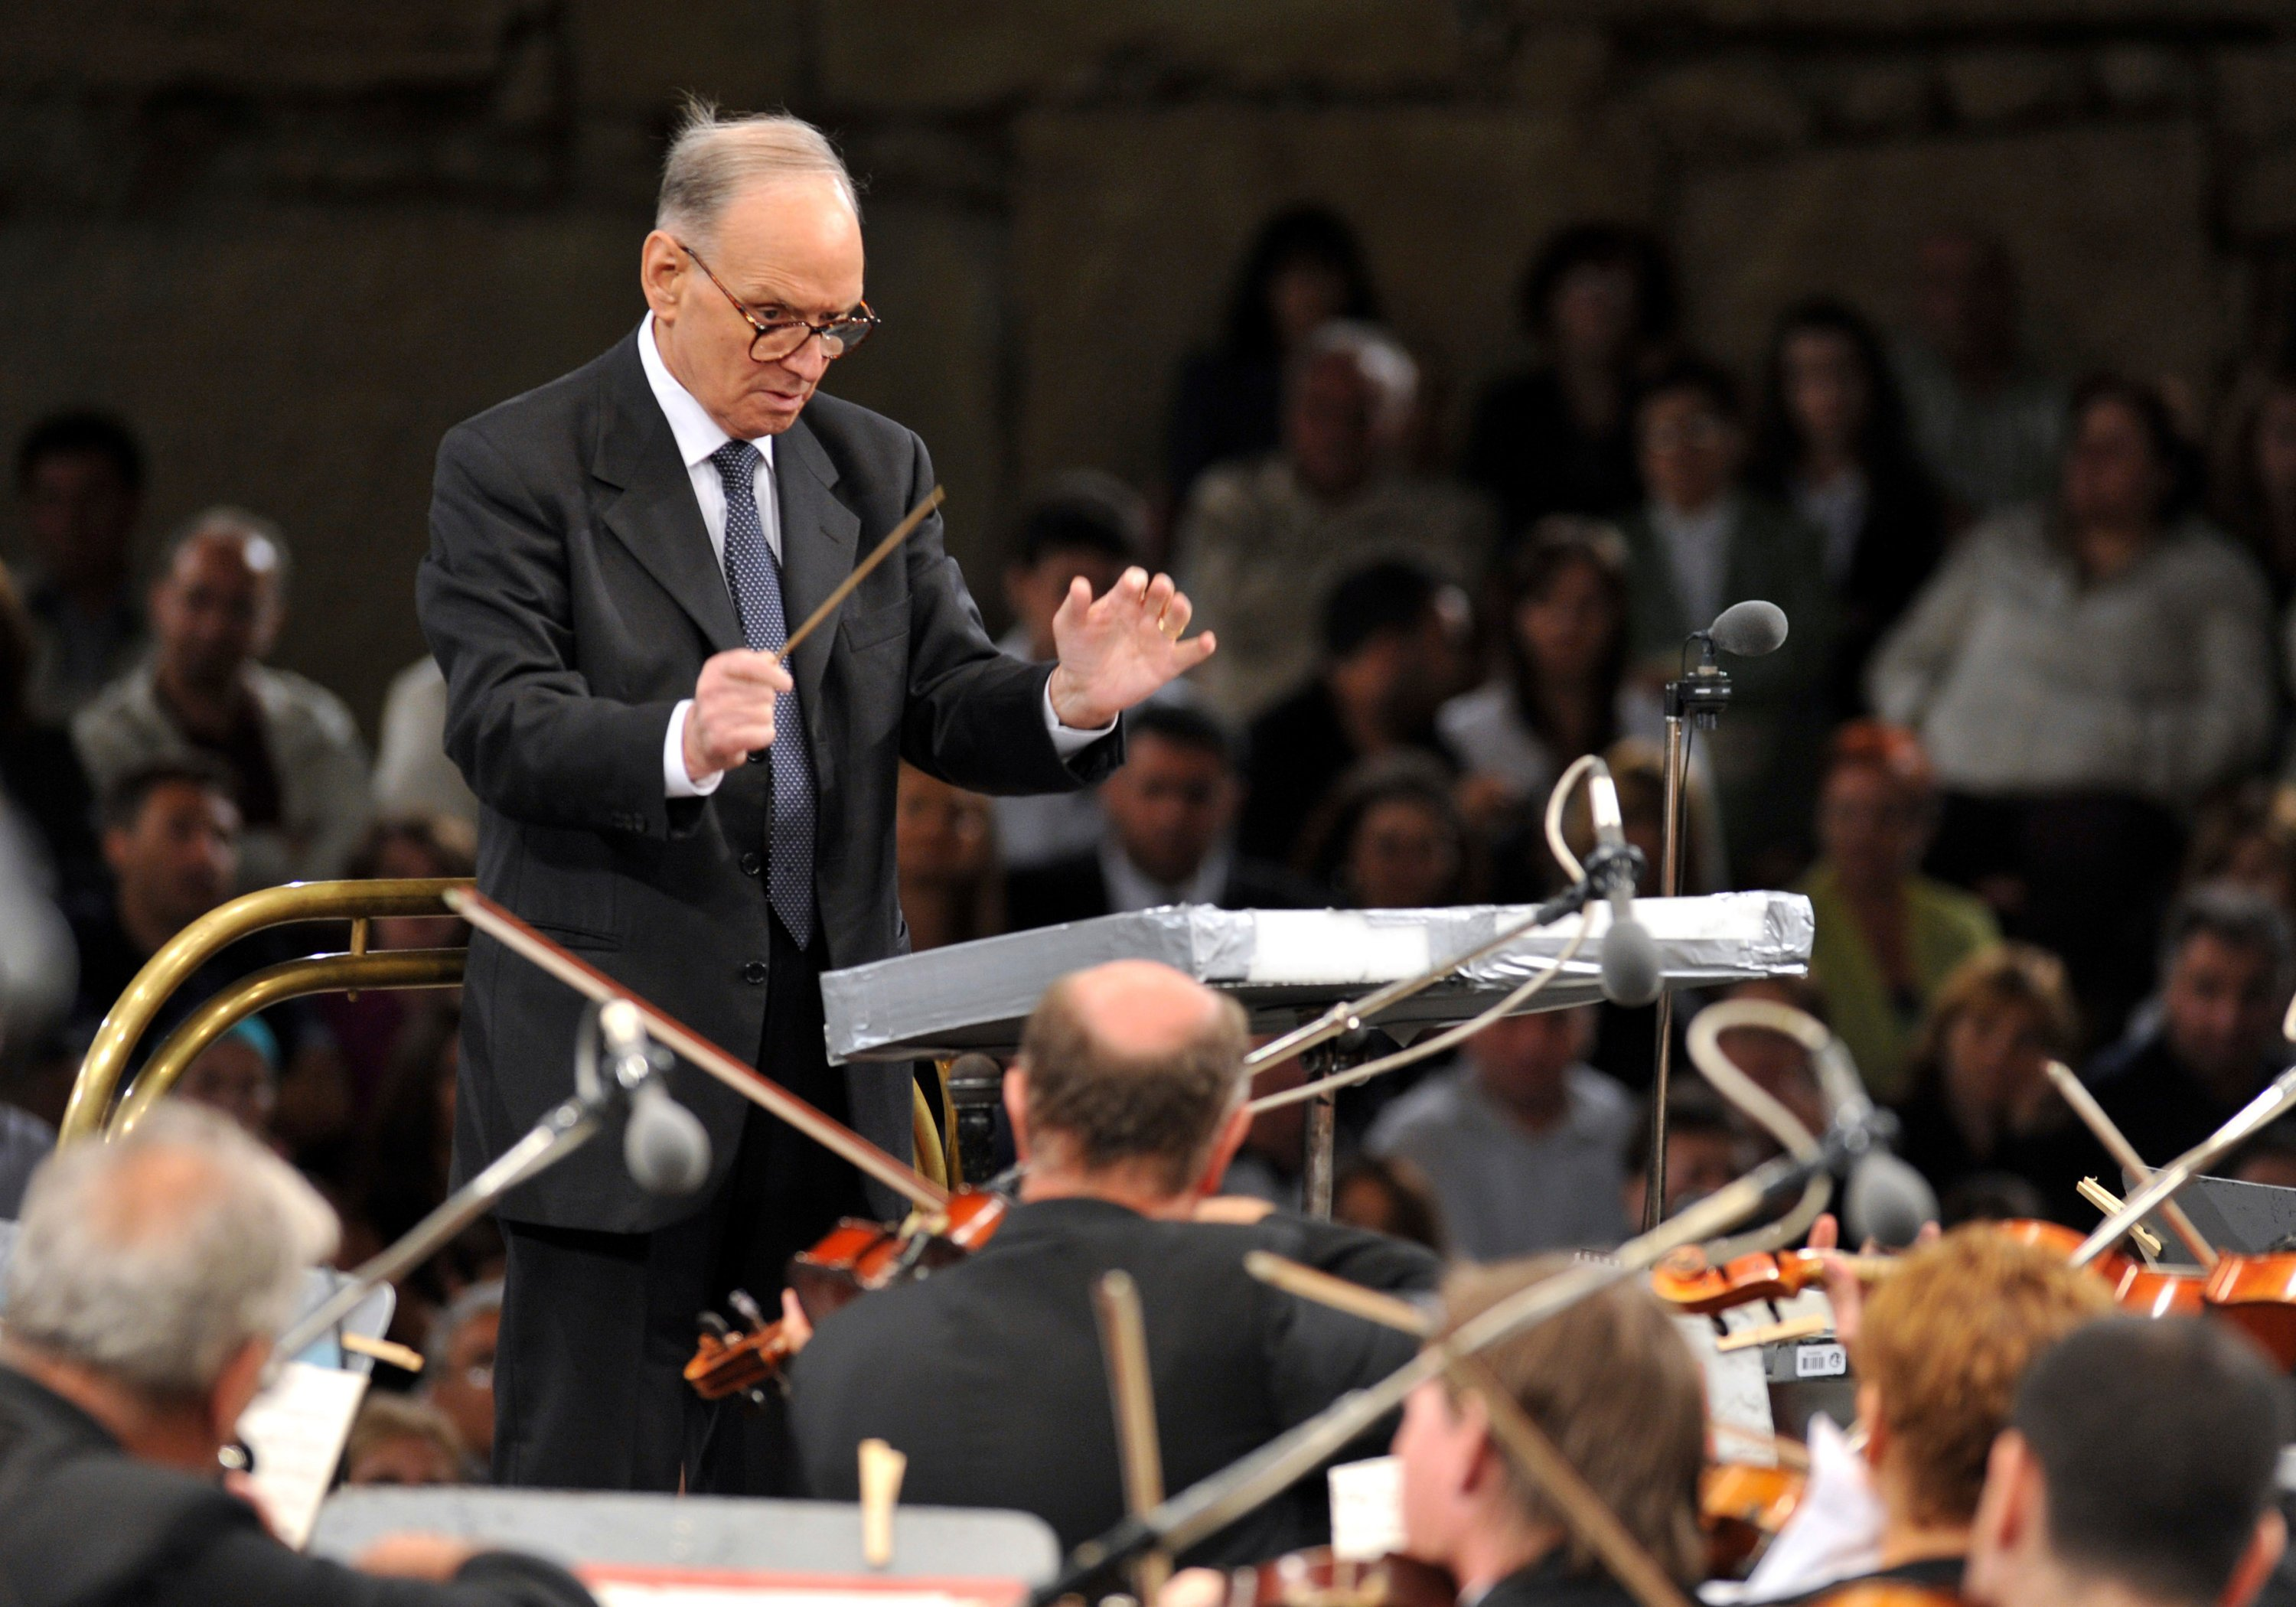 Composer Ennio Morricone, conducts with the Budapest Symphonic Orchestra in Macedonia, on July 12, 2009. (AP Photo)